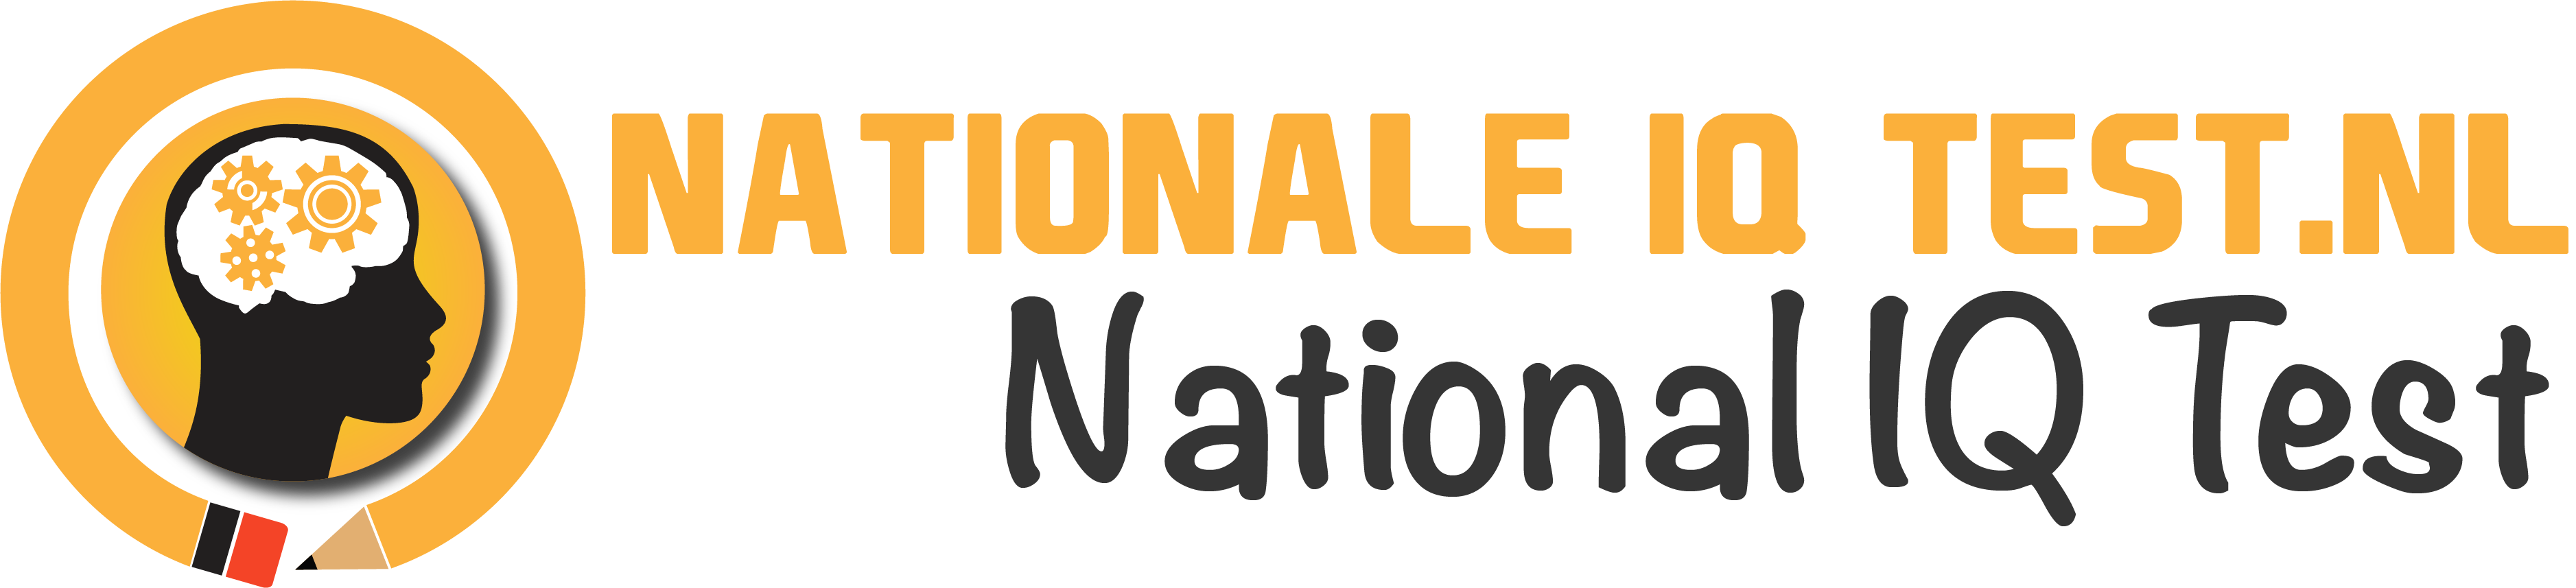 nationale-iq-test.nl